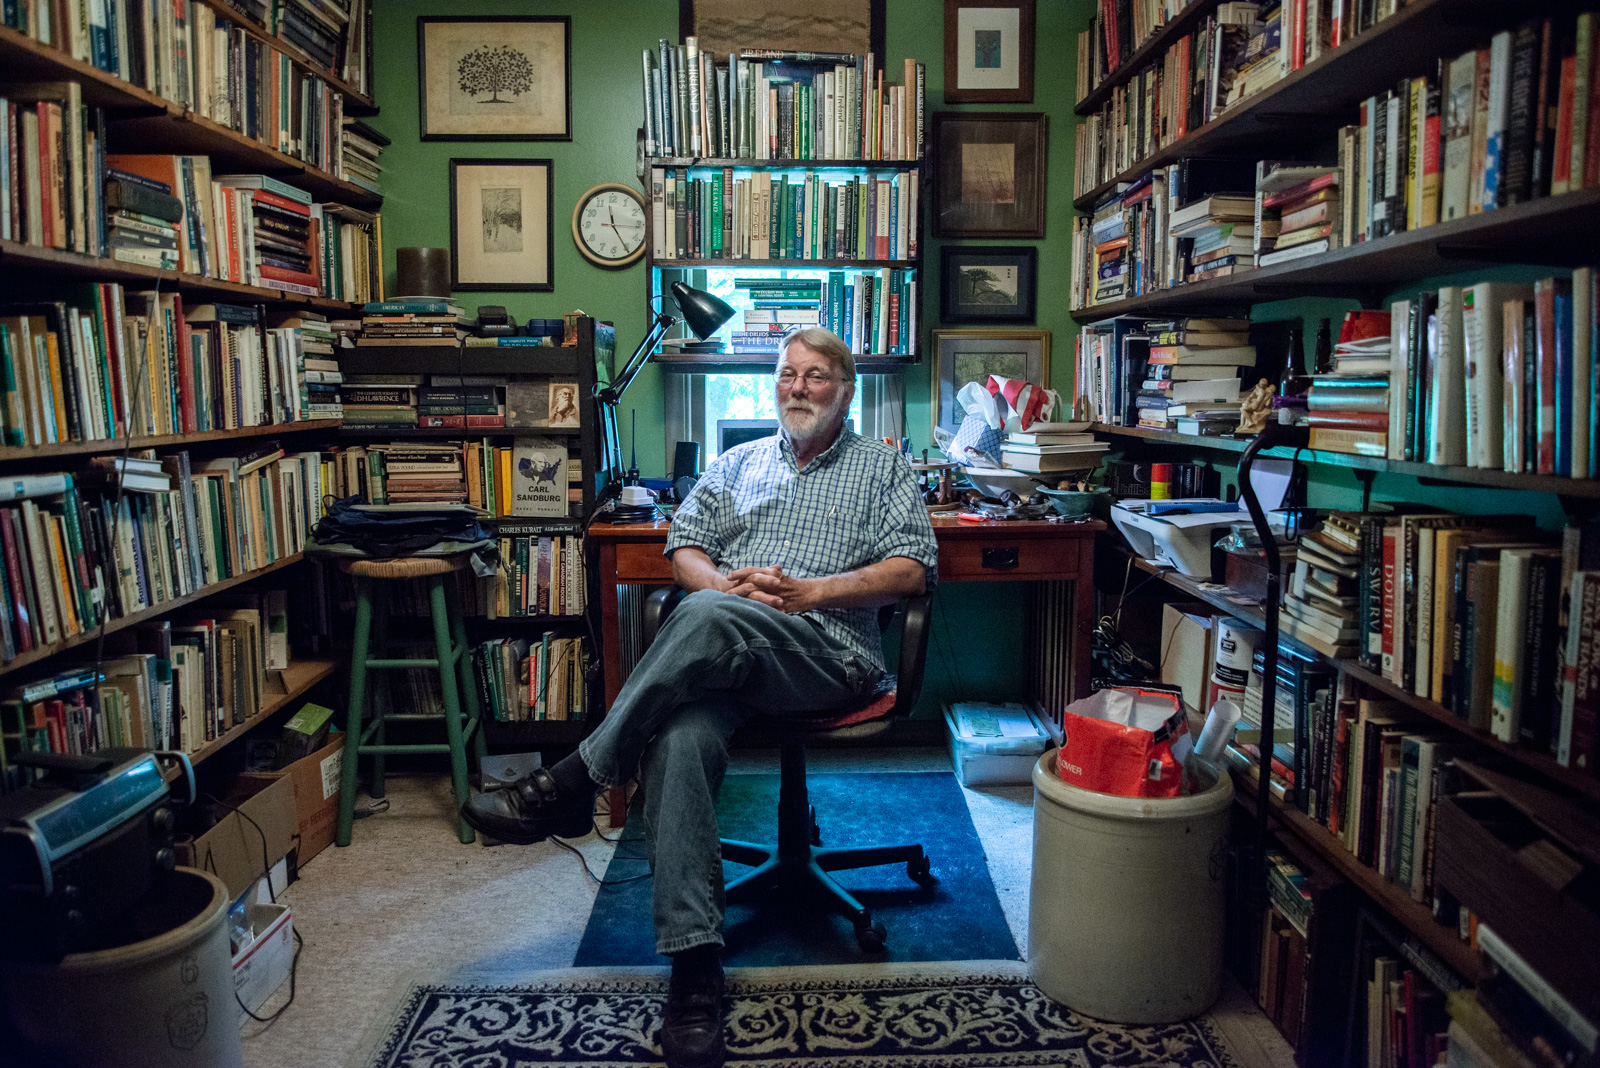 A Visit to Rob Withrow's Studio